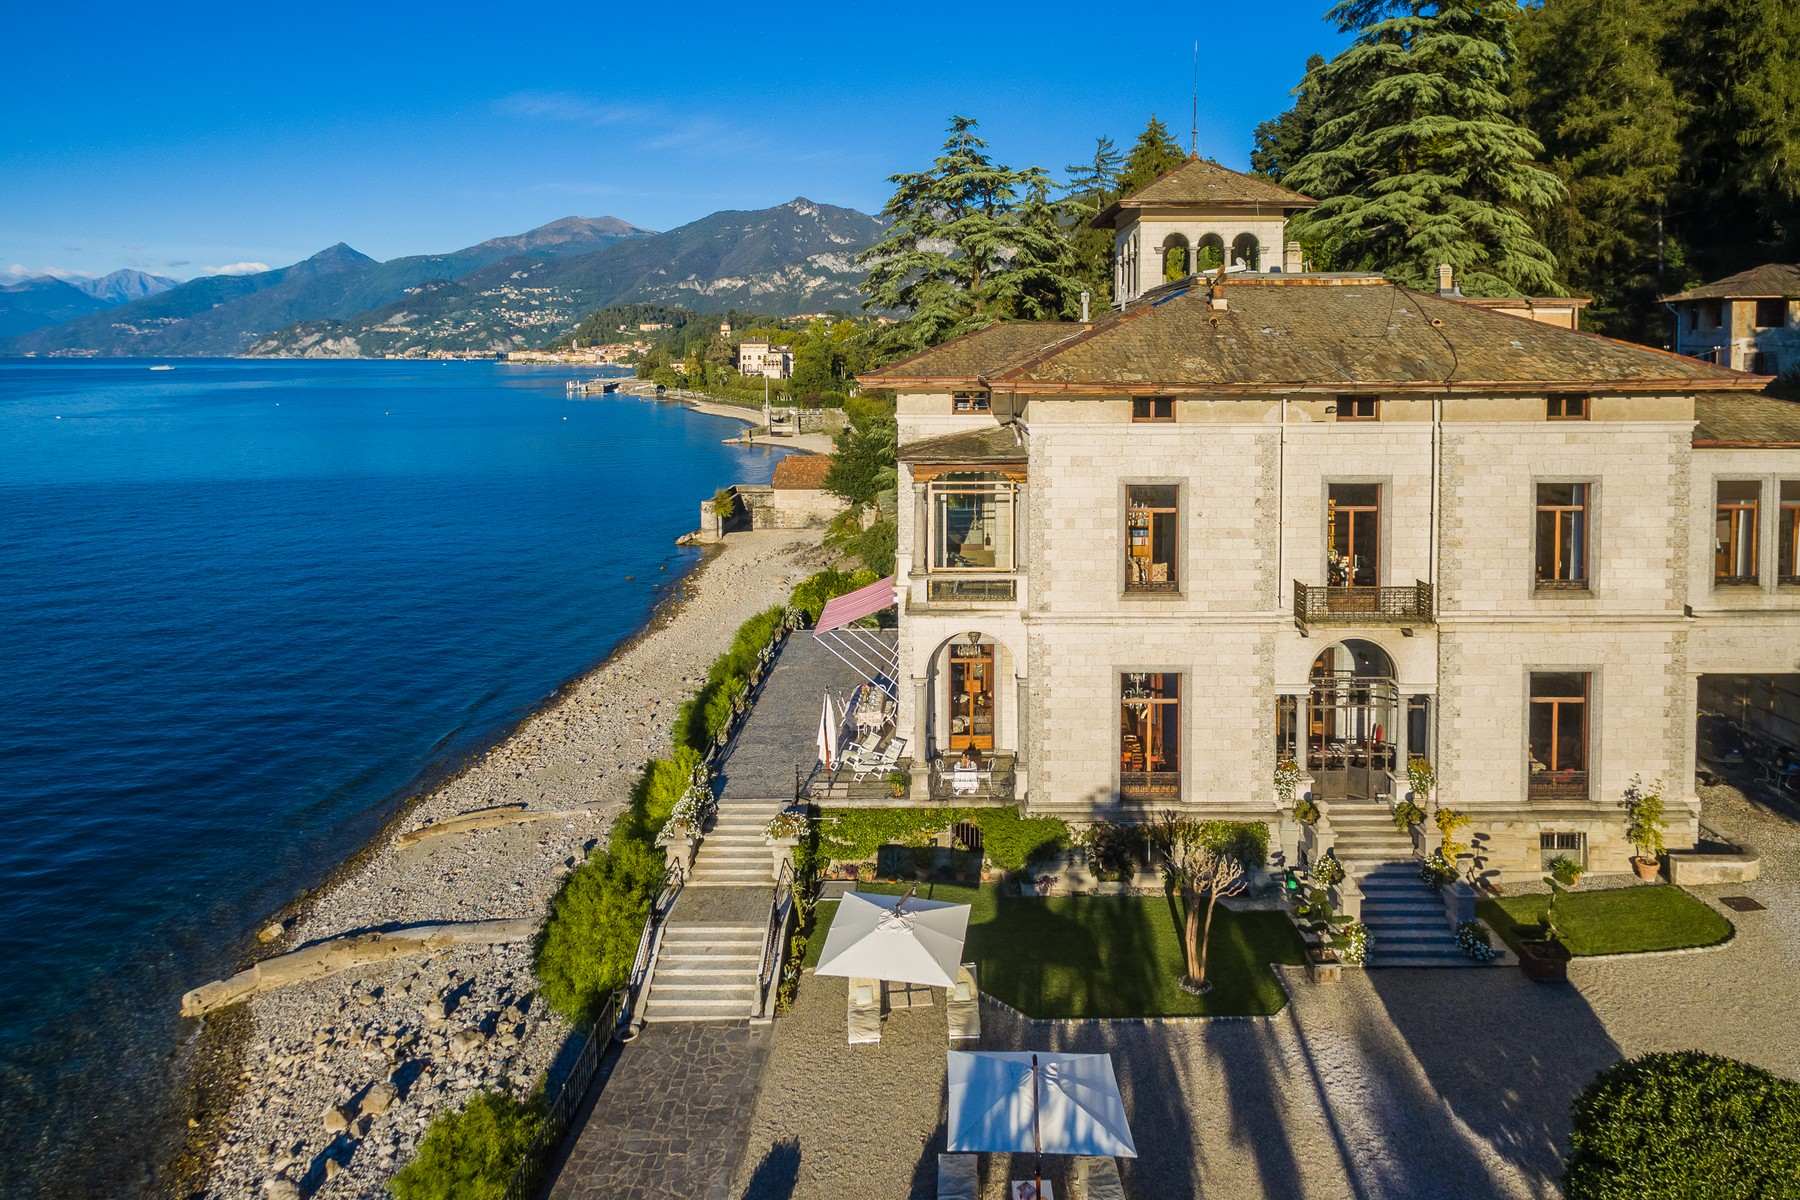 Single Family Home for Rent at Magnificent villa Liberty pieds dans l'eau on Lake Como Via Beneficienza Bellagio, Como 22021 Italy